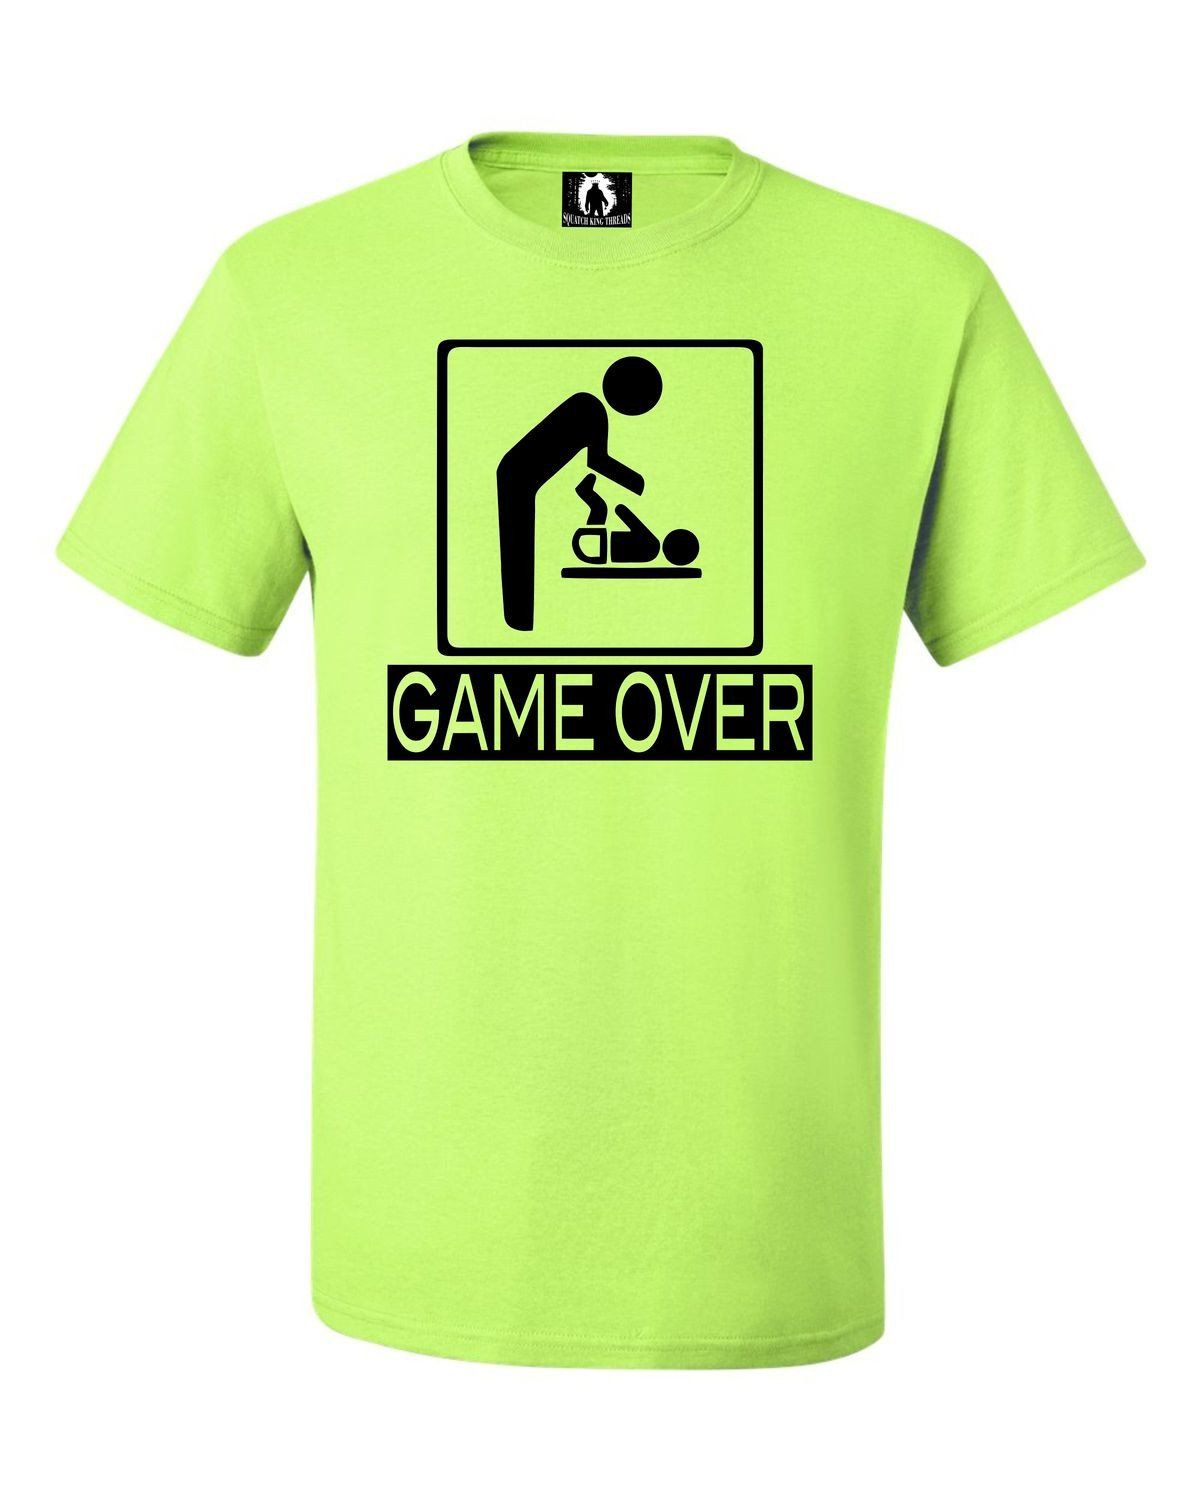 b894cd071 Adult Game Over New Dad New Father Funny T-Shirt | Products ...